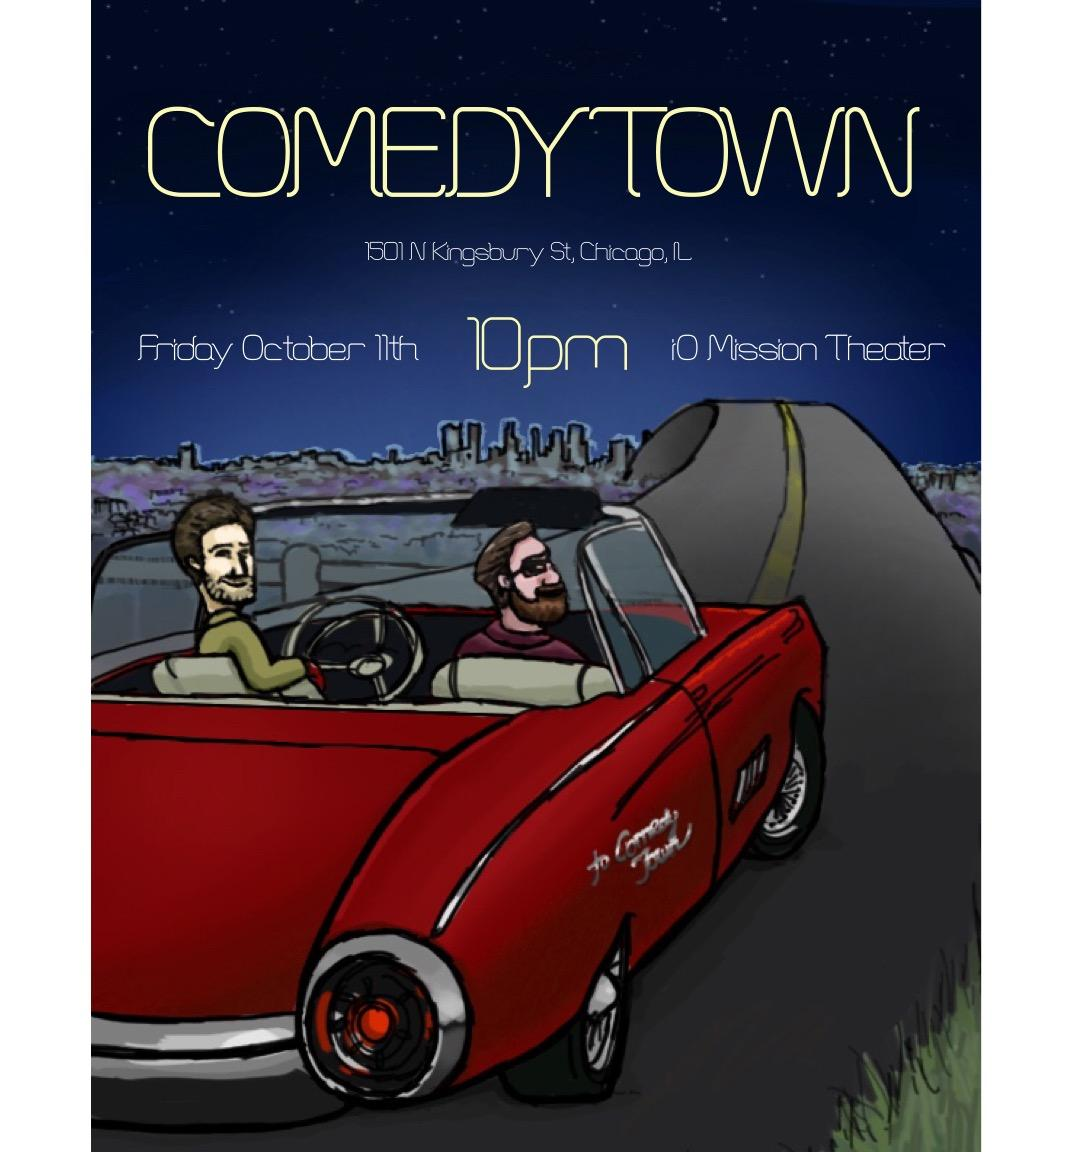 ComedyTown